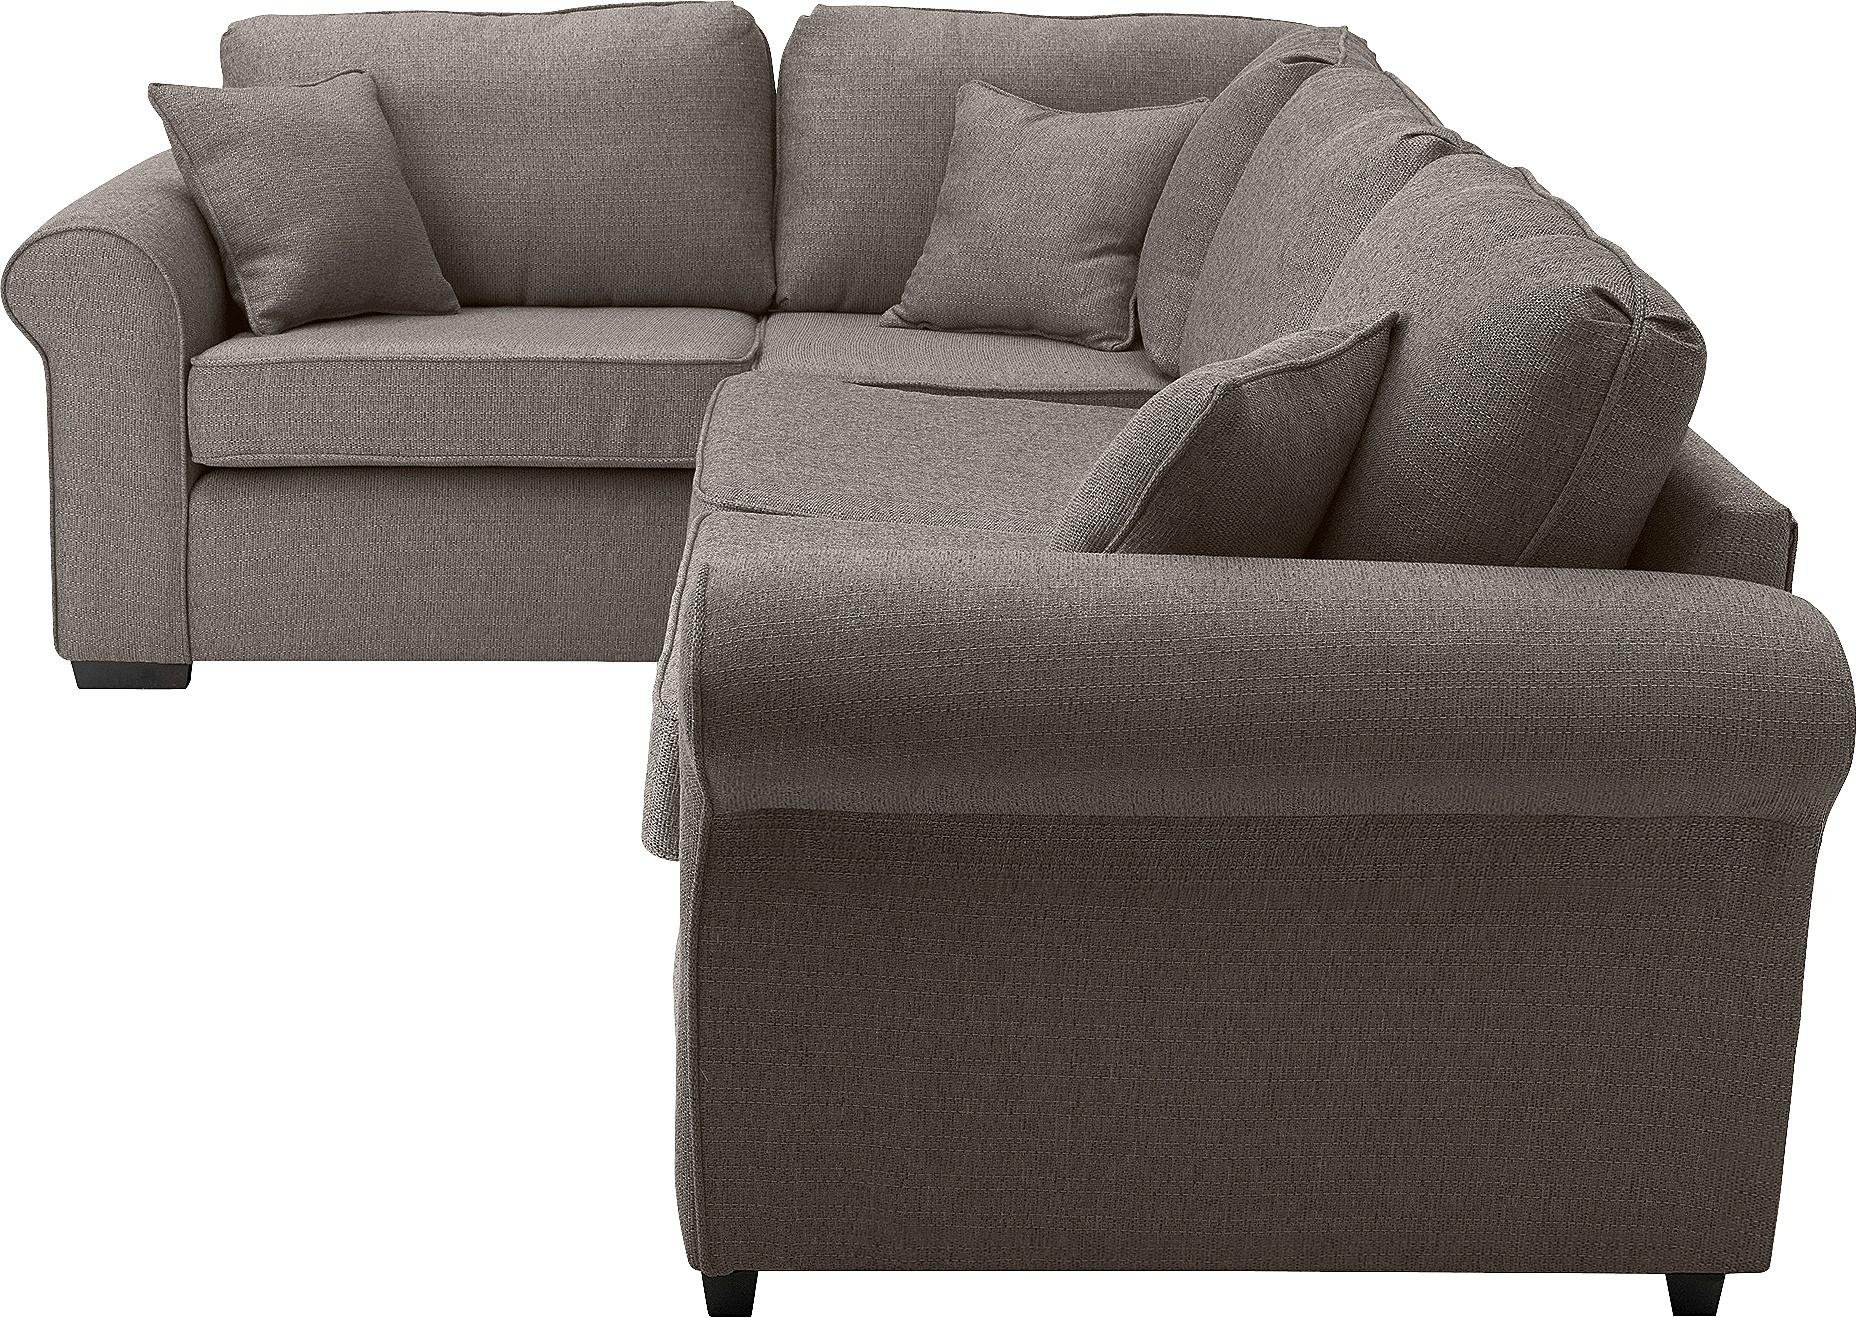 Sale On Argos Home Erinne Fabric Left Hand Corner Sofa